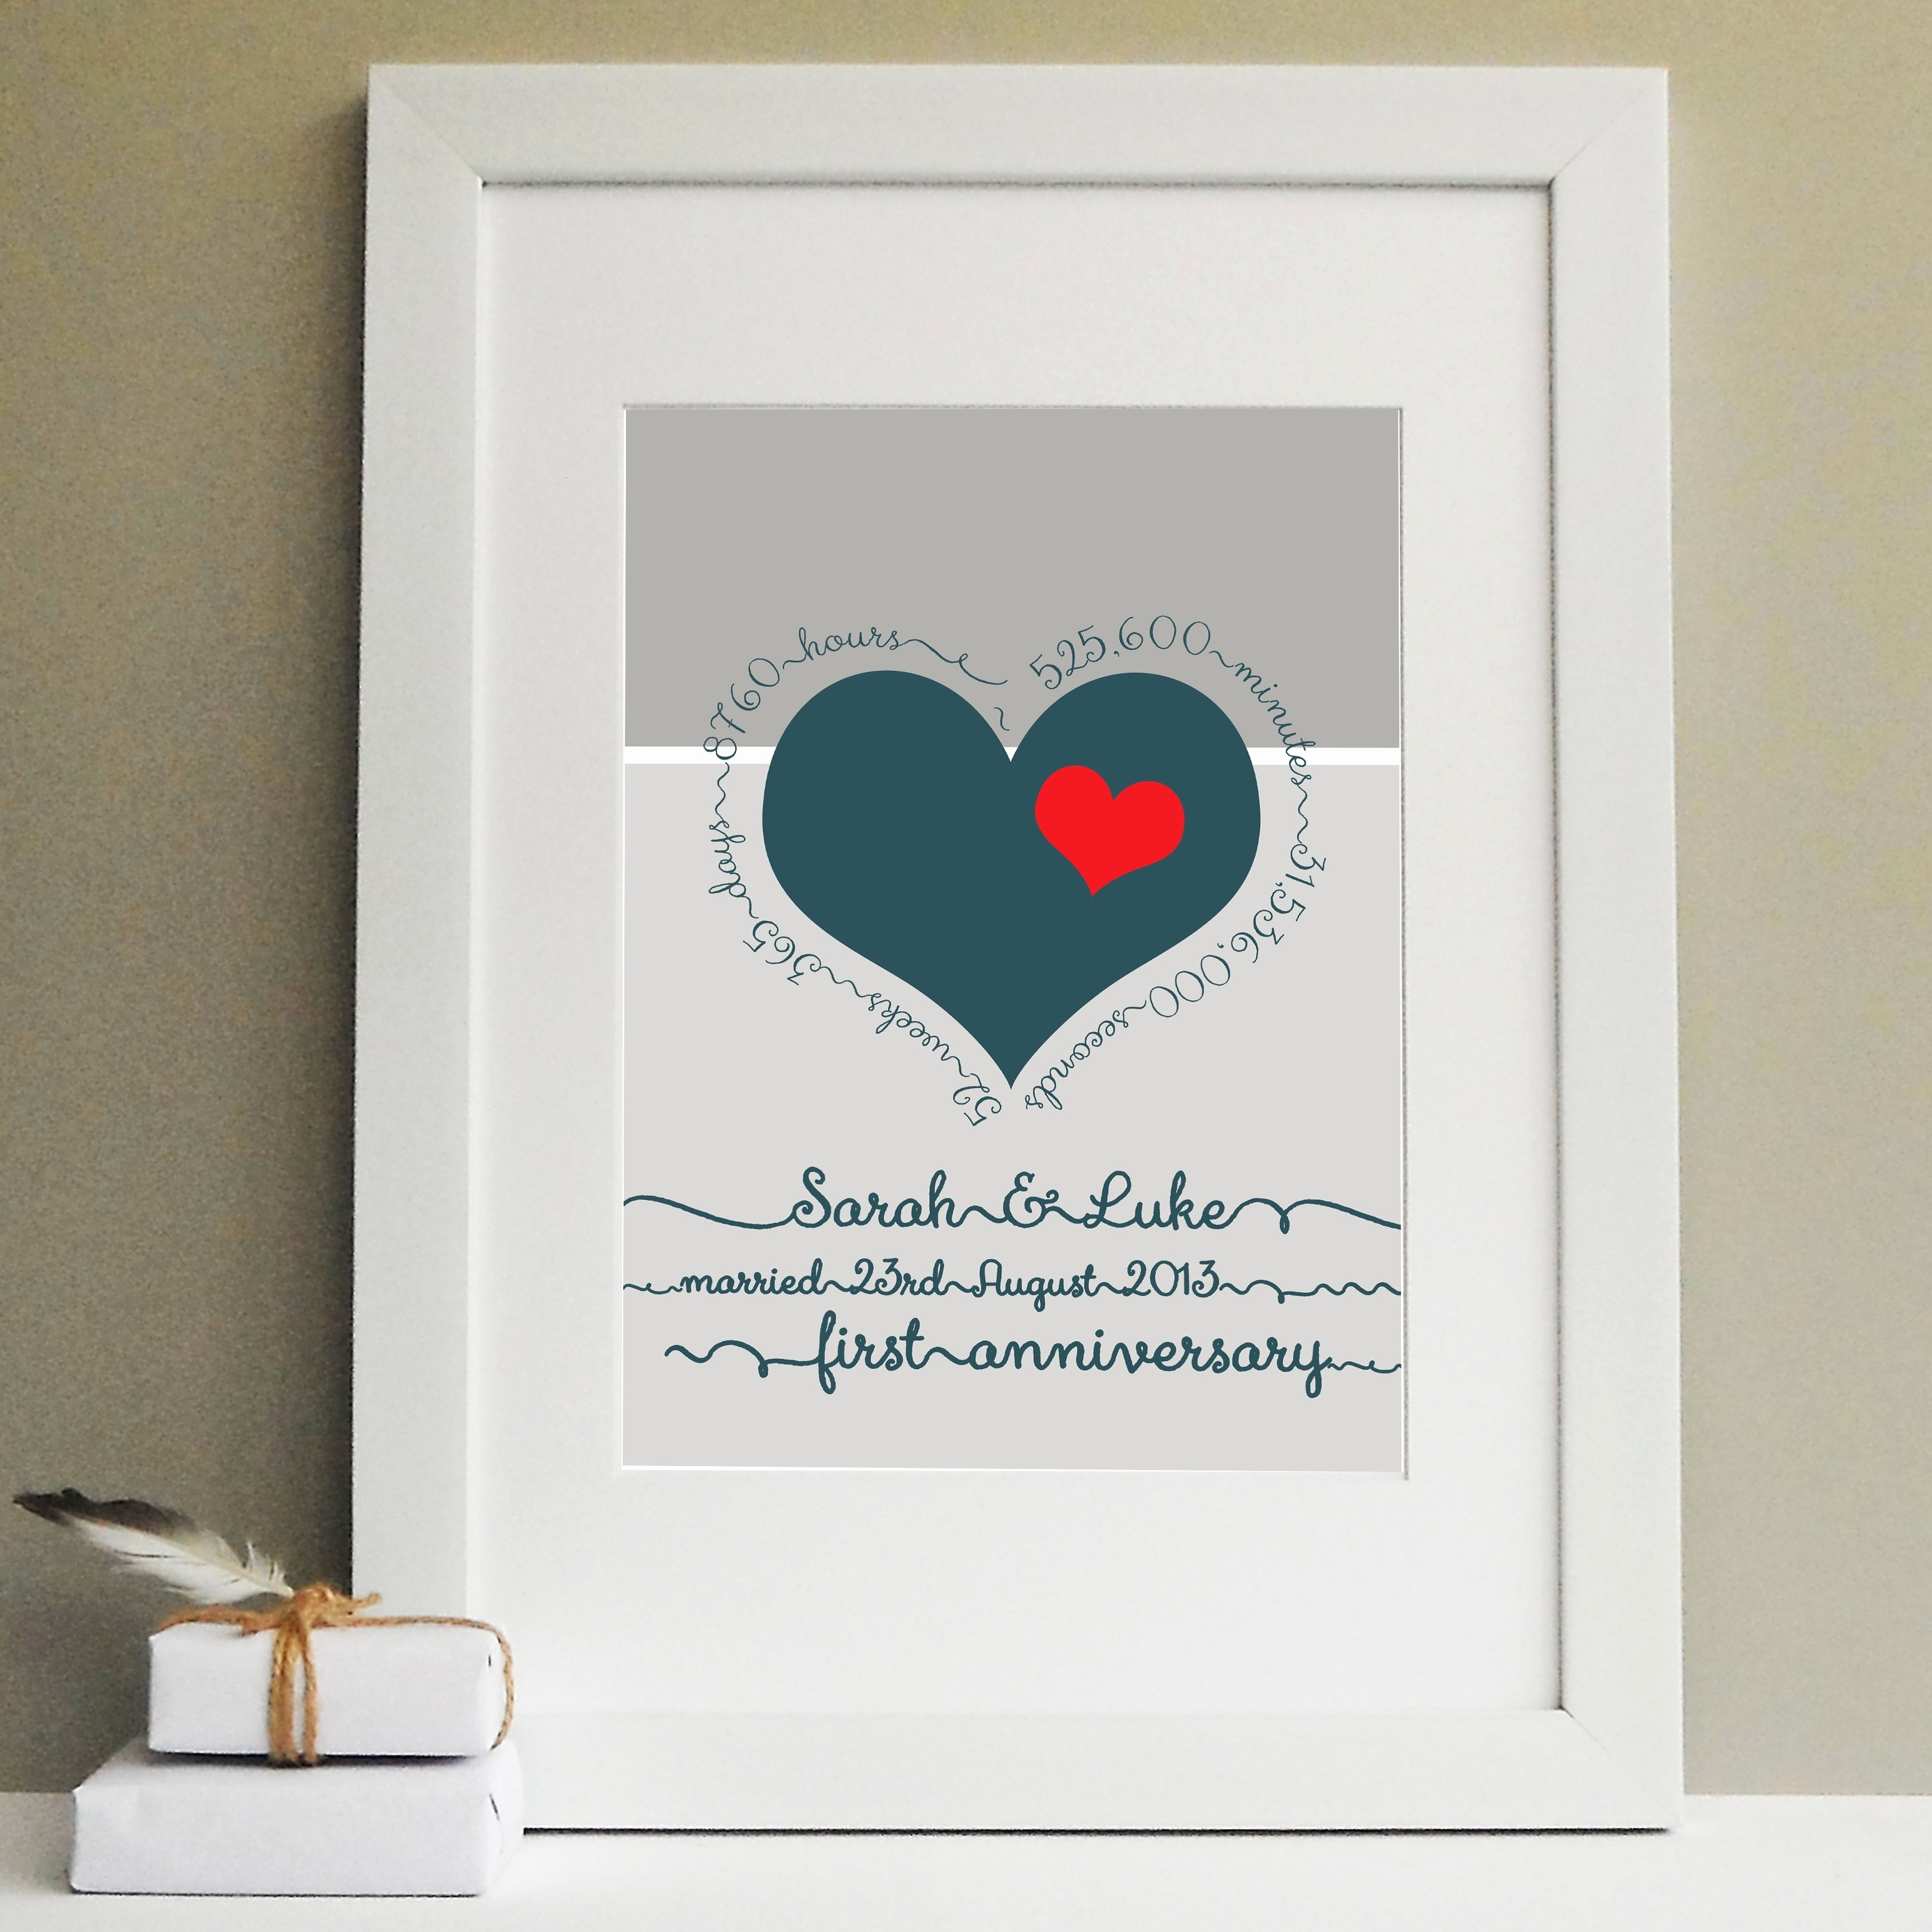 ideas for 2nd wedding anniversary gift for wife new beautiful first